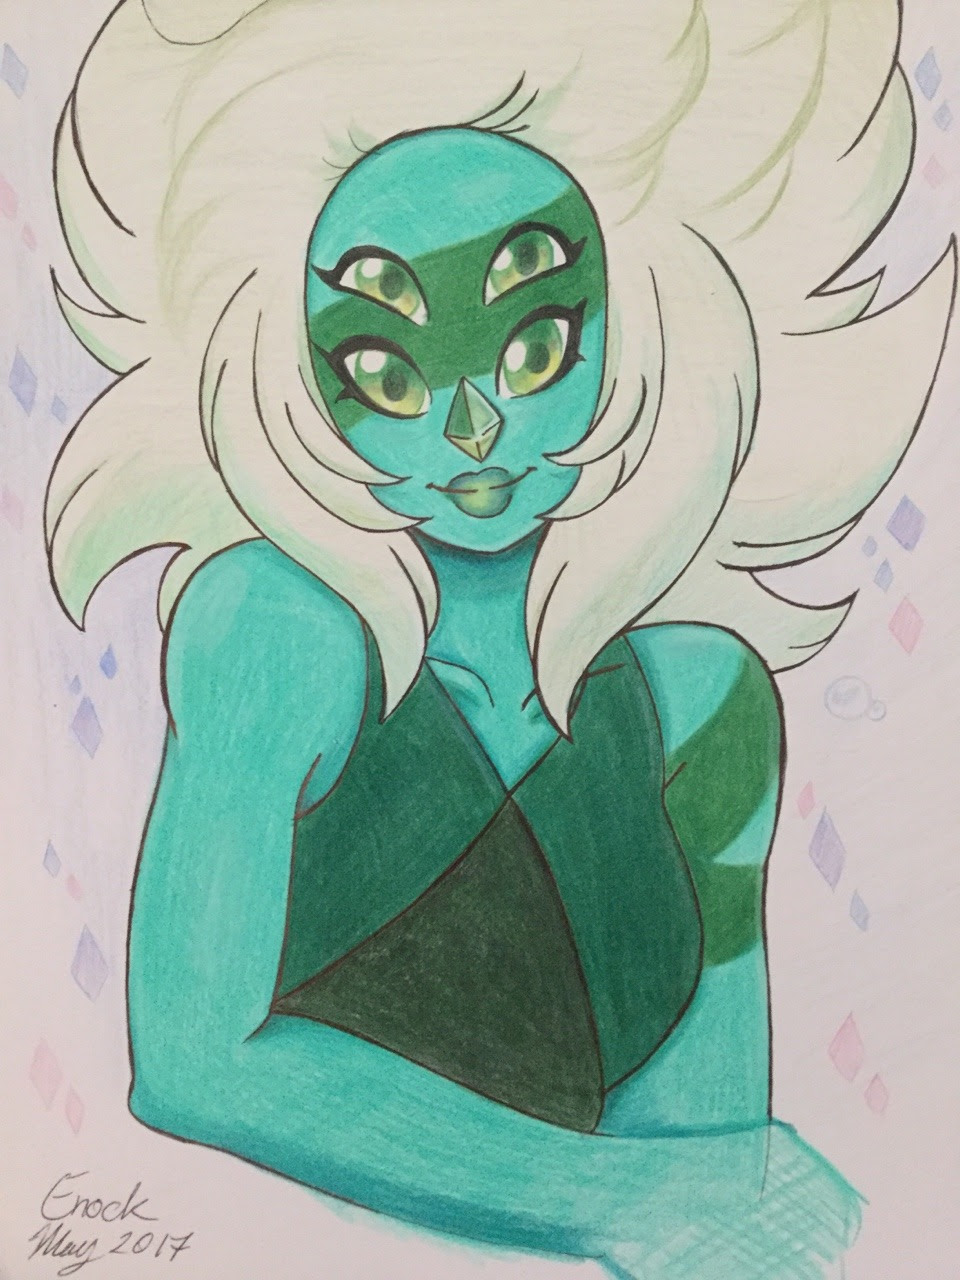 Malachite for fun!